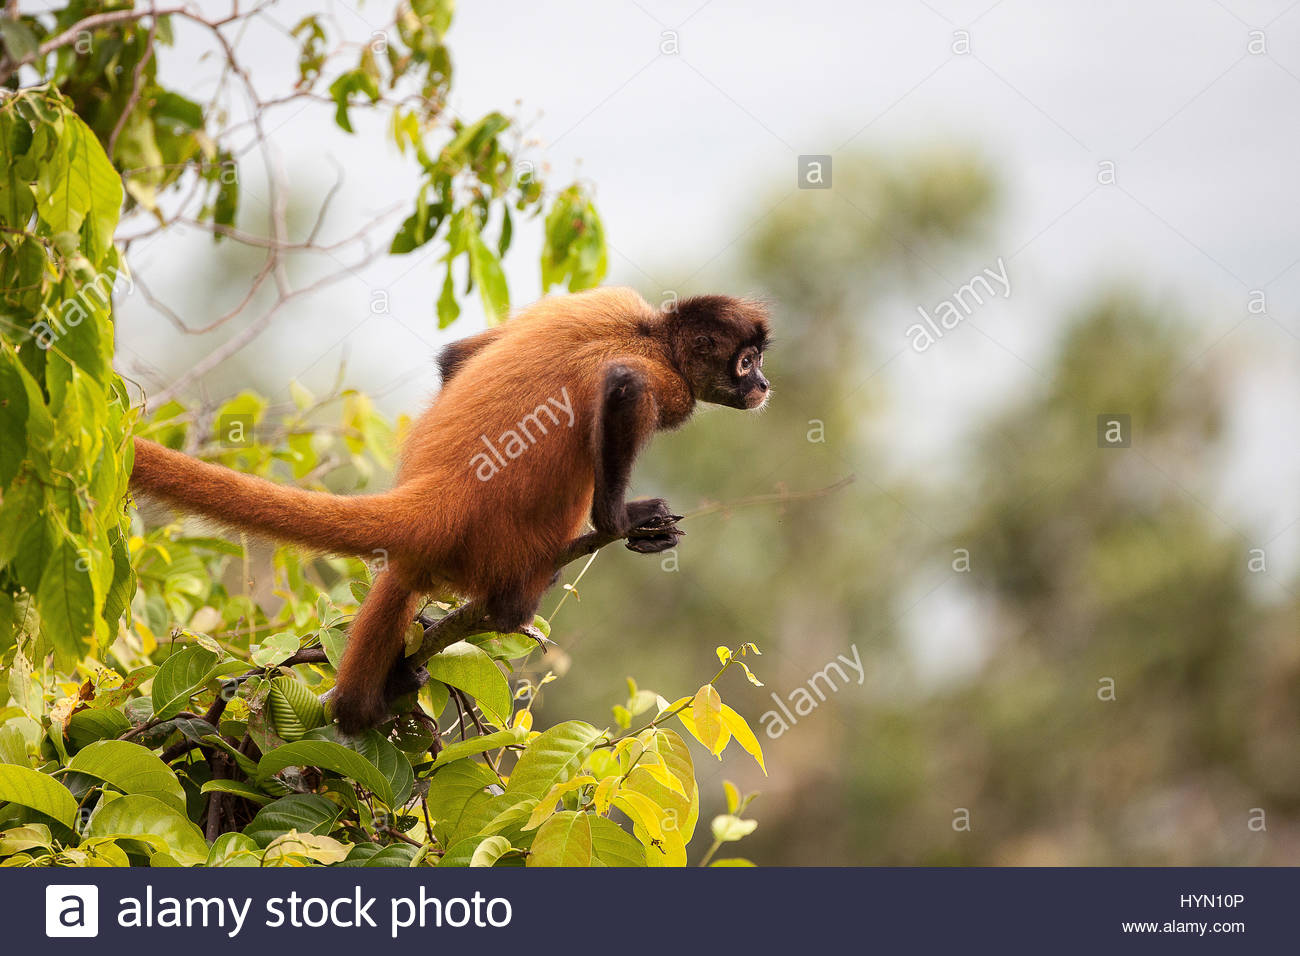 A spider monkey, Ateles geoffroyi, perched in a tree. - Stock Image